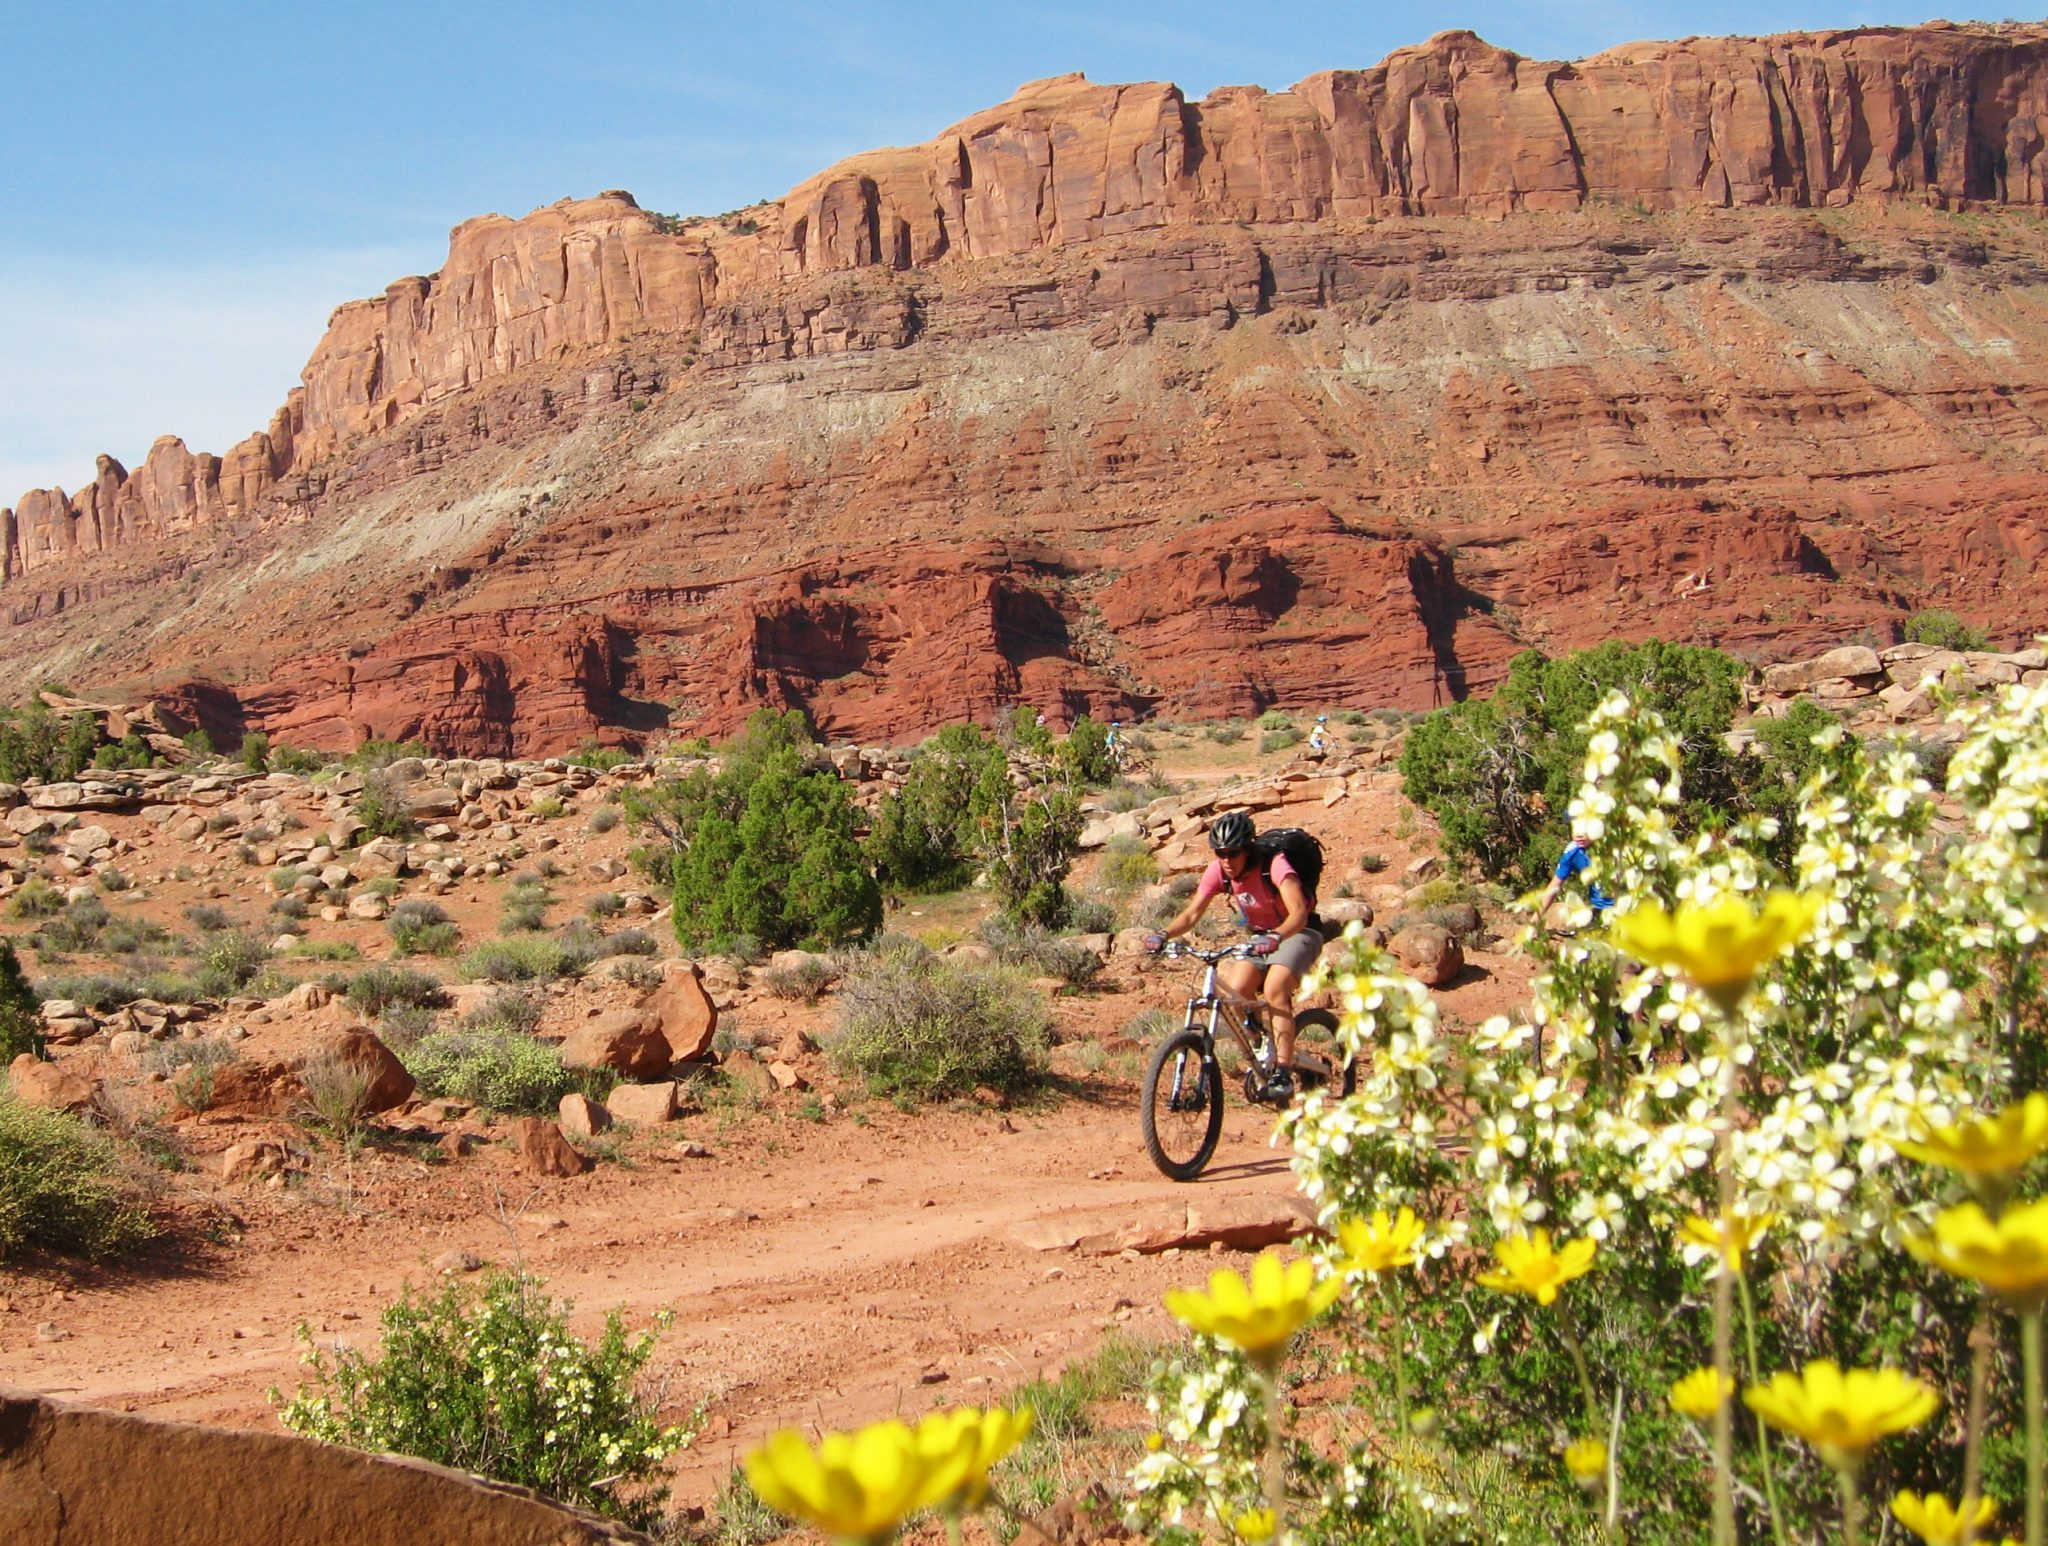 Cliffrose in bloom near GSENM adds to wonderful mountain bike guided tour